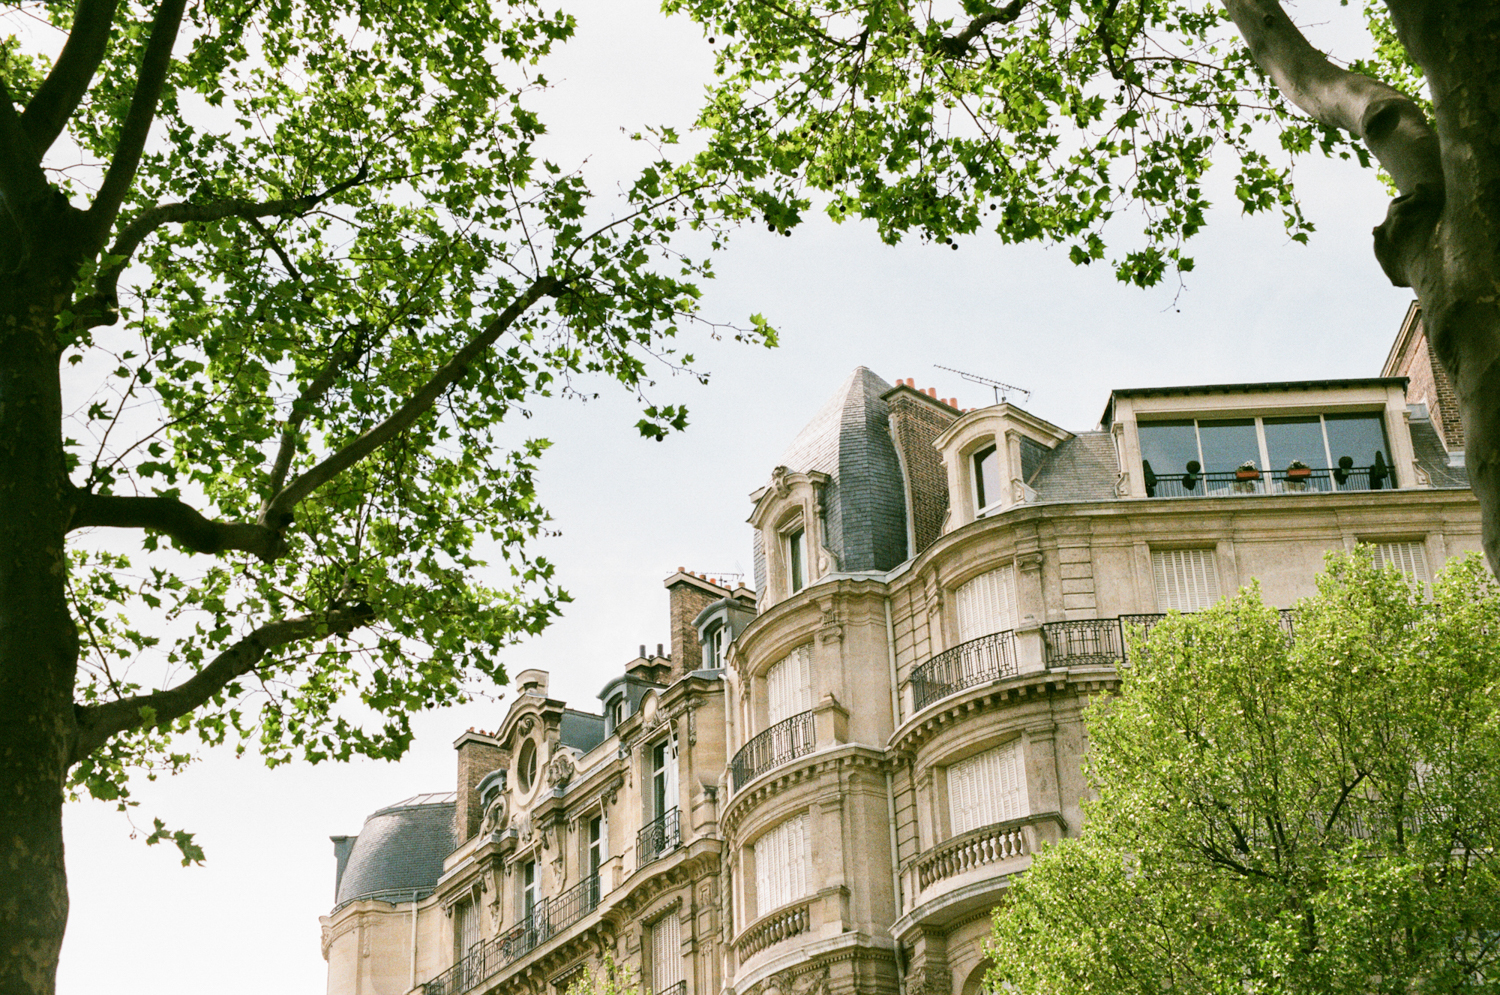 gorgeous trees framing a stunning building in Paris